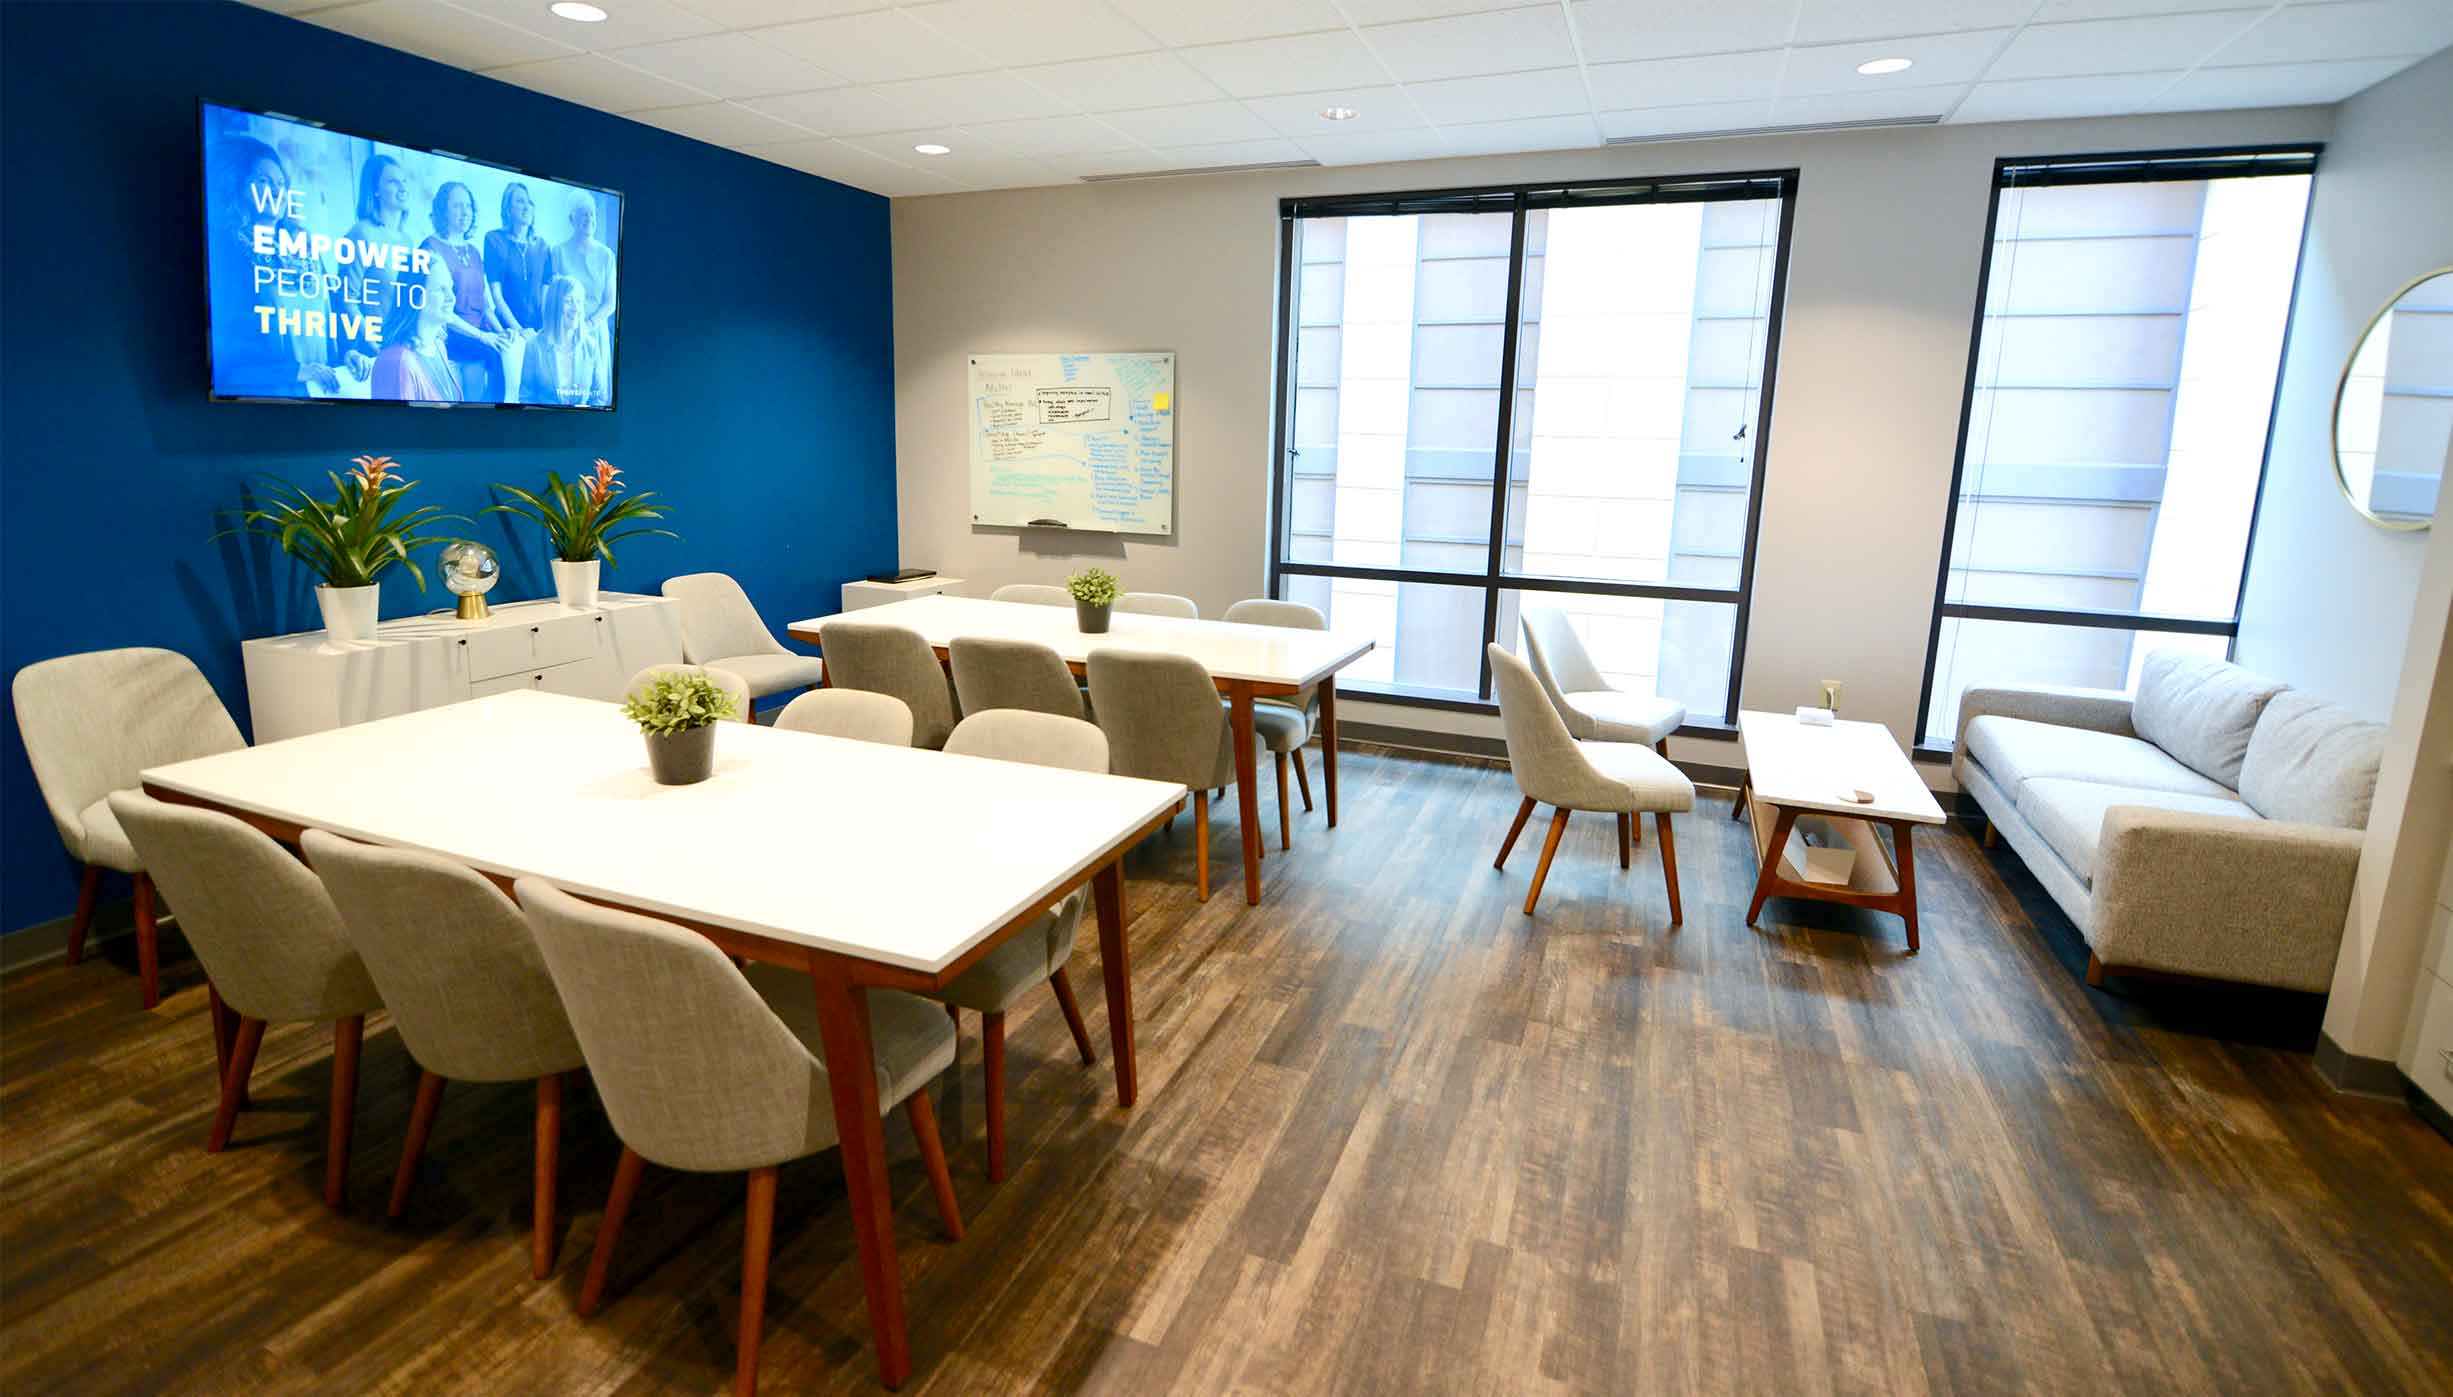 Brightly lit room with windows and modern rustic wooden feel for group counseling and therapy workshops at Liberty Center. ThrivePointe Counseling in Liberty Township, OH 45069